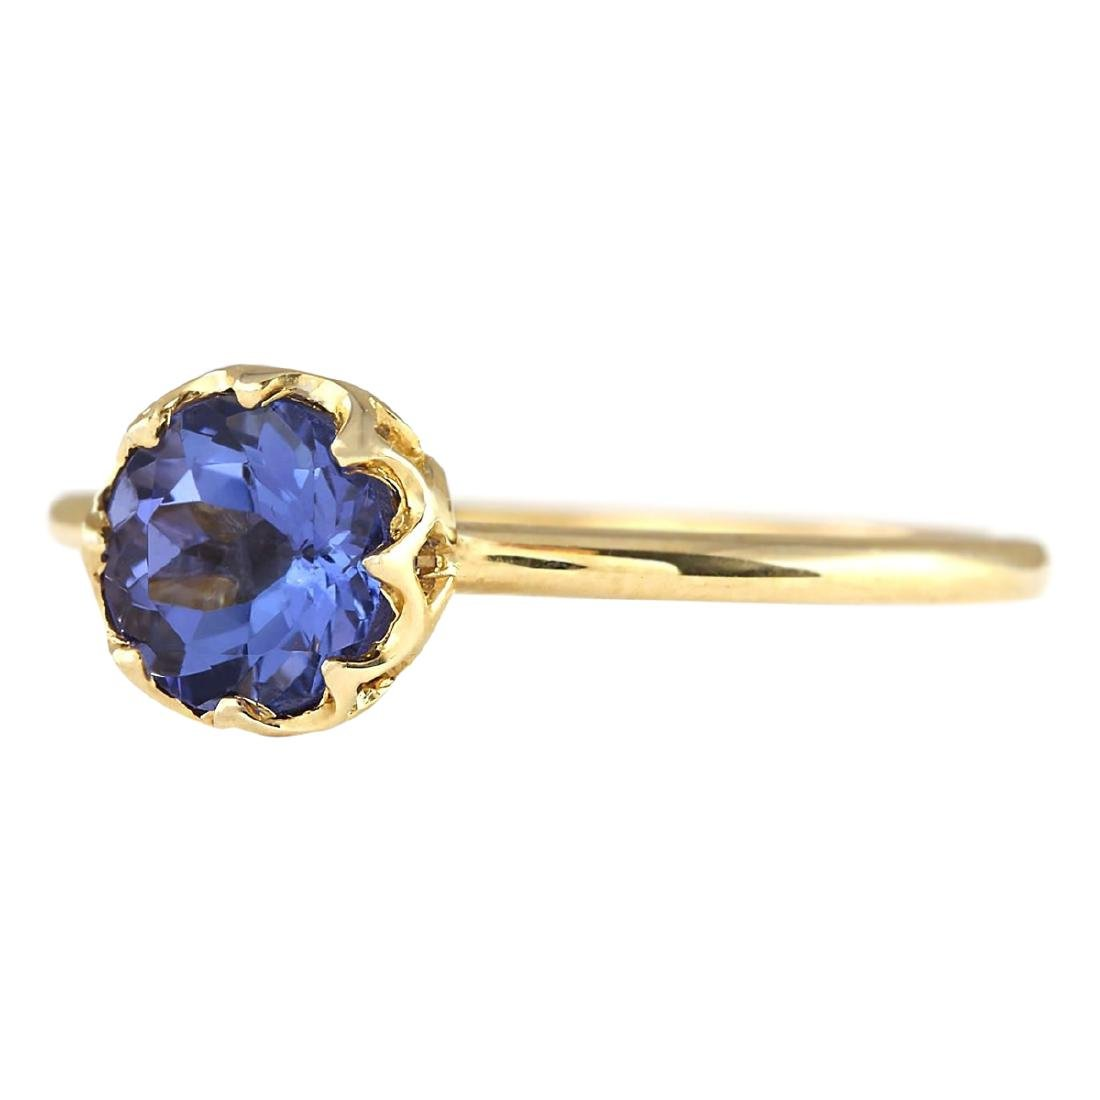 1.35 CTW Natural Tanzanite Ring In 18K Yellow Gold - 2